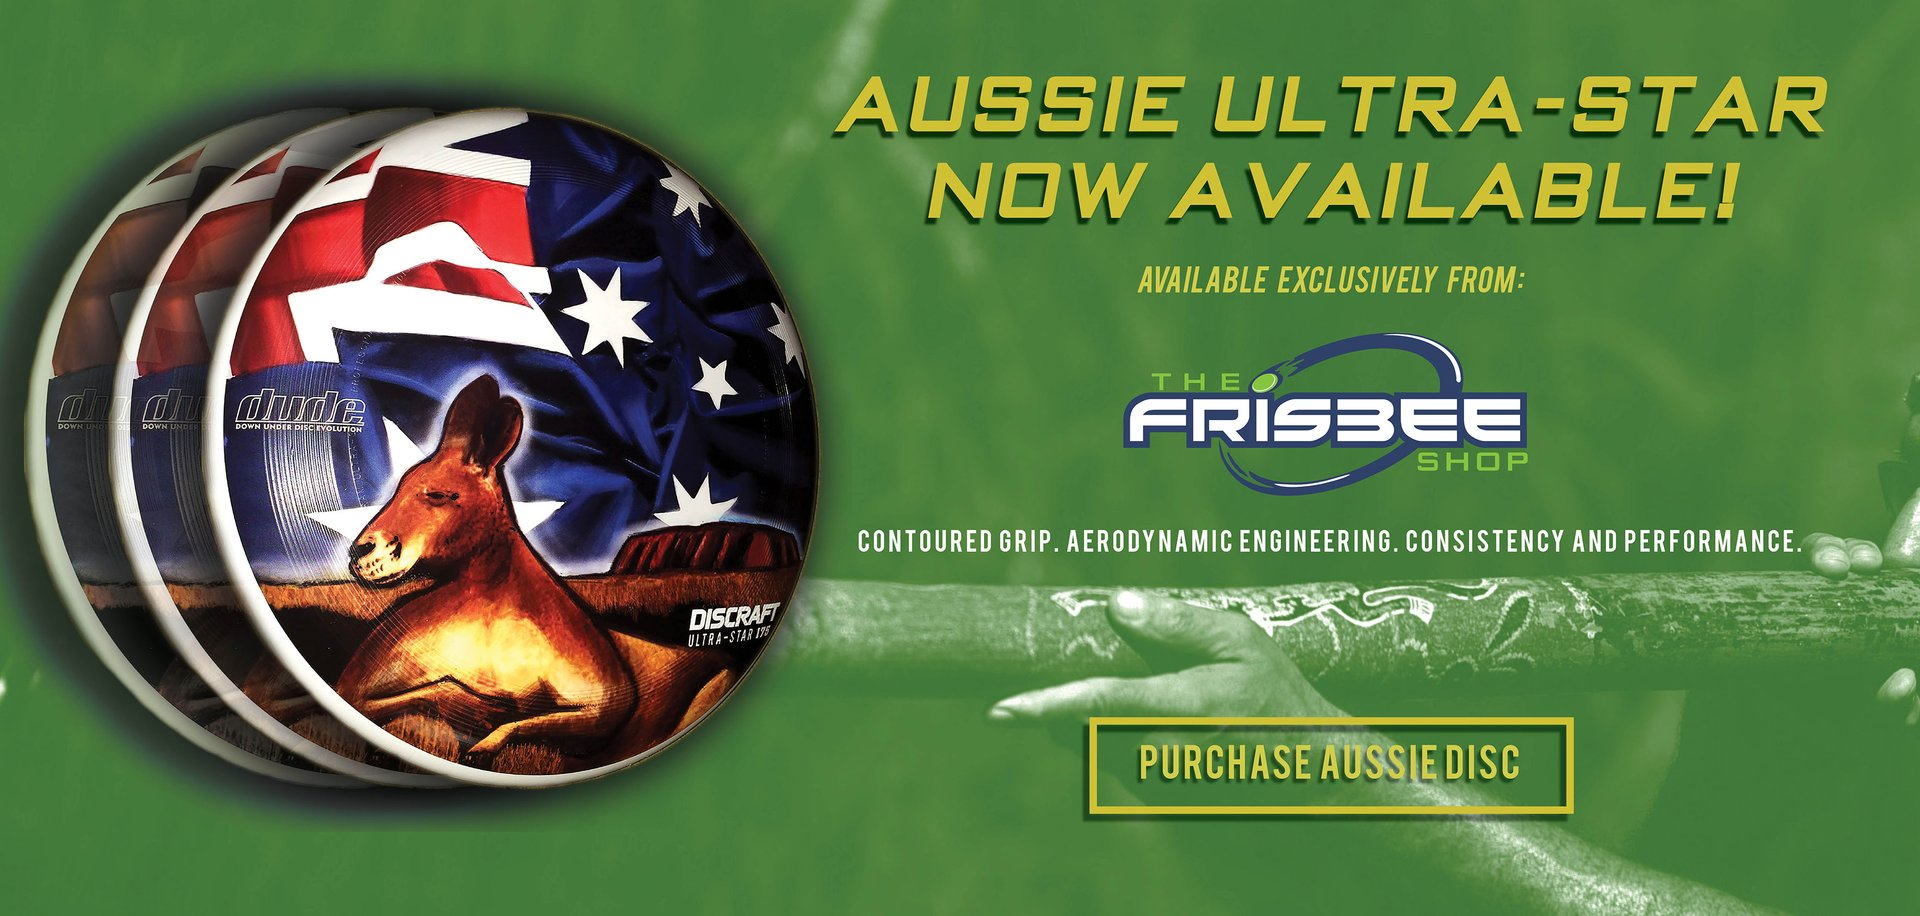 The Frisbee Shop - Aussie Ultra-Star